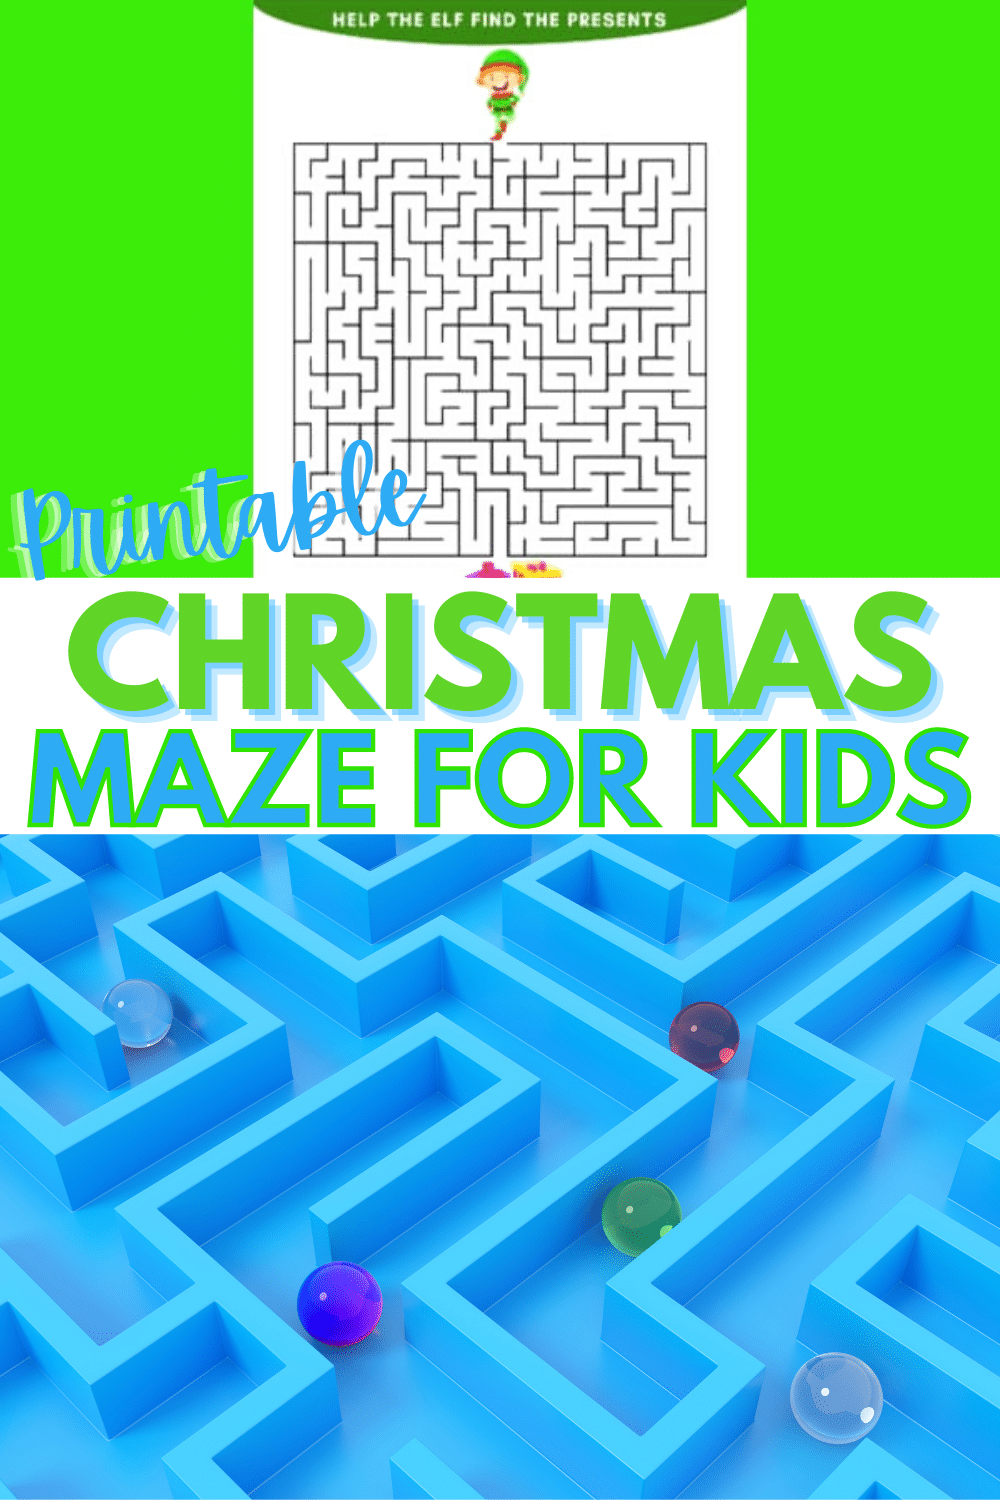 A printable Christmas maze for kids is a fun indoor activity for restless kids who are excited about the holidays. This is perfect for class parties! #printables #christmasactivities #maze via @wondermomwannab